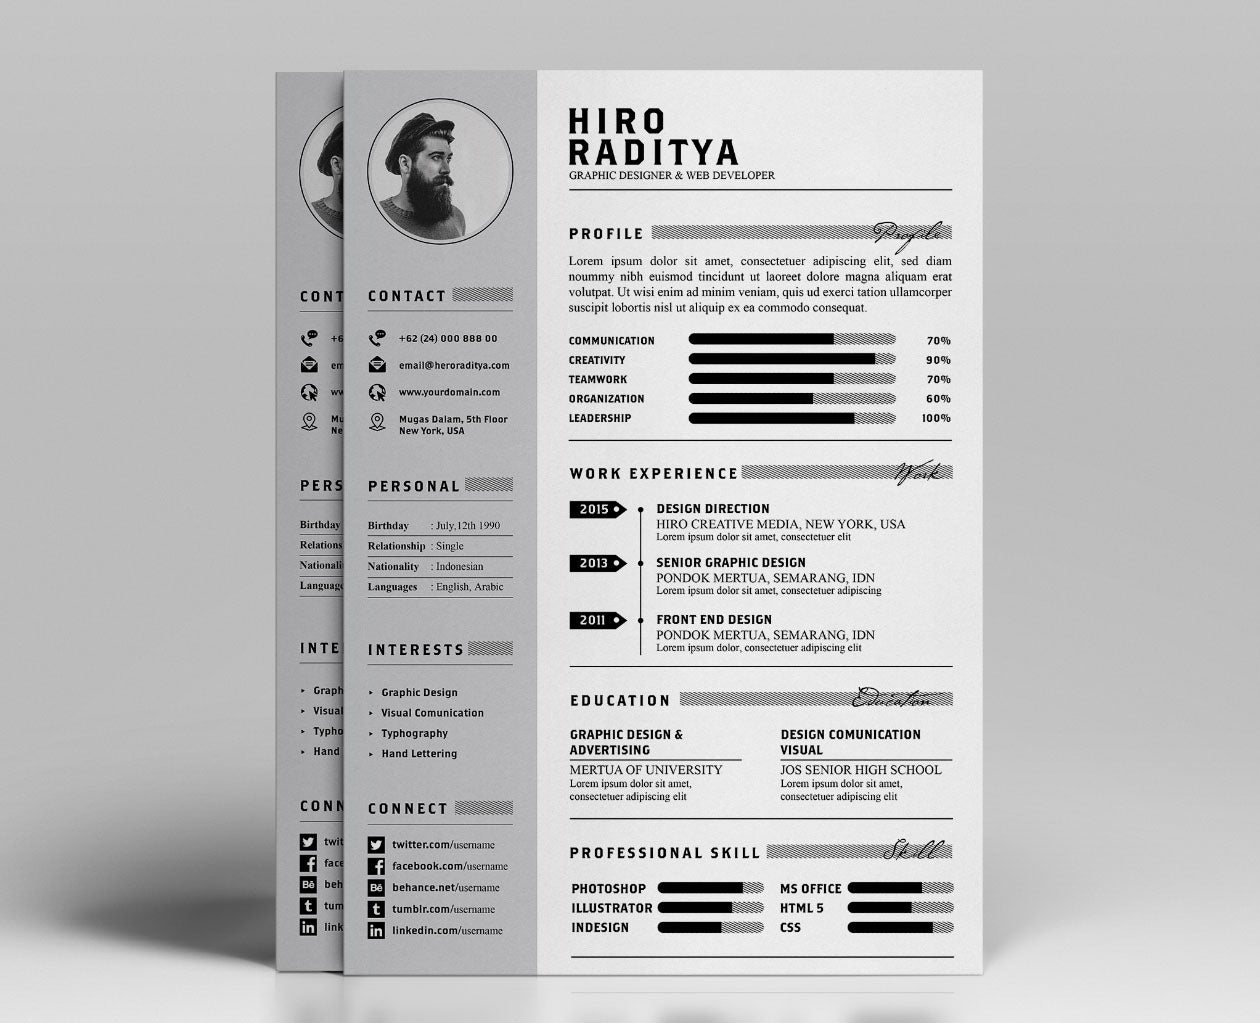 free resume  cv and portfolio template in photoshop  psd  and illustra